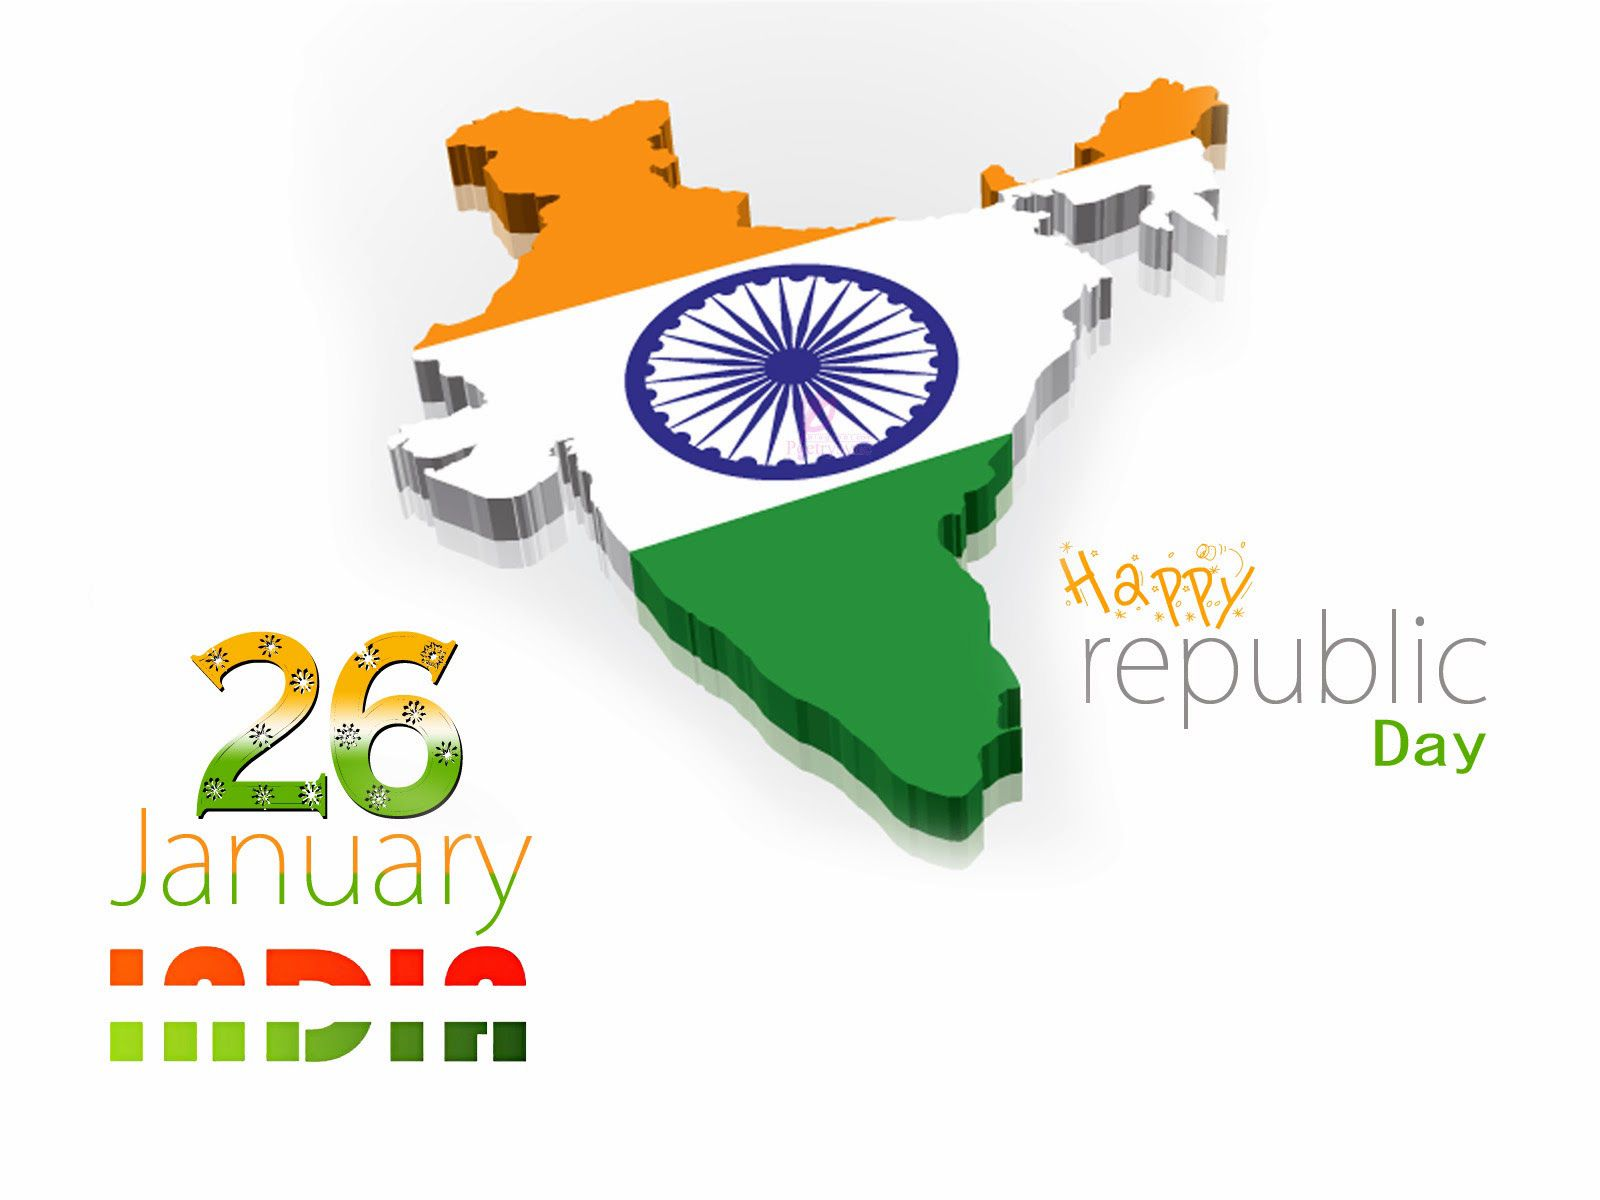 India Map For Republic Day 346589   HD Wallpaper Backgrounds 1600x1200